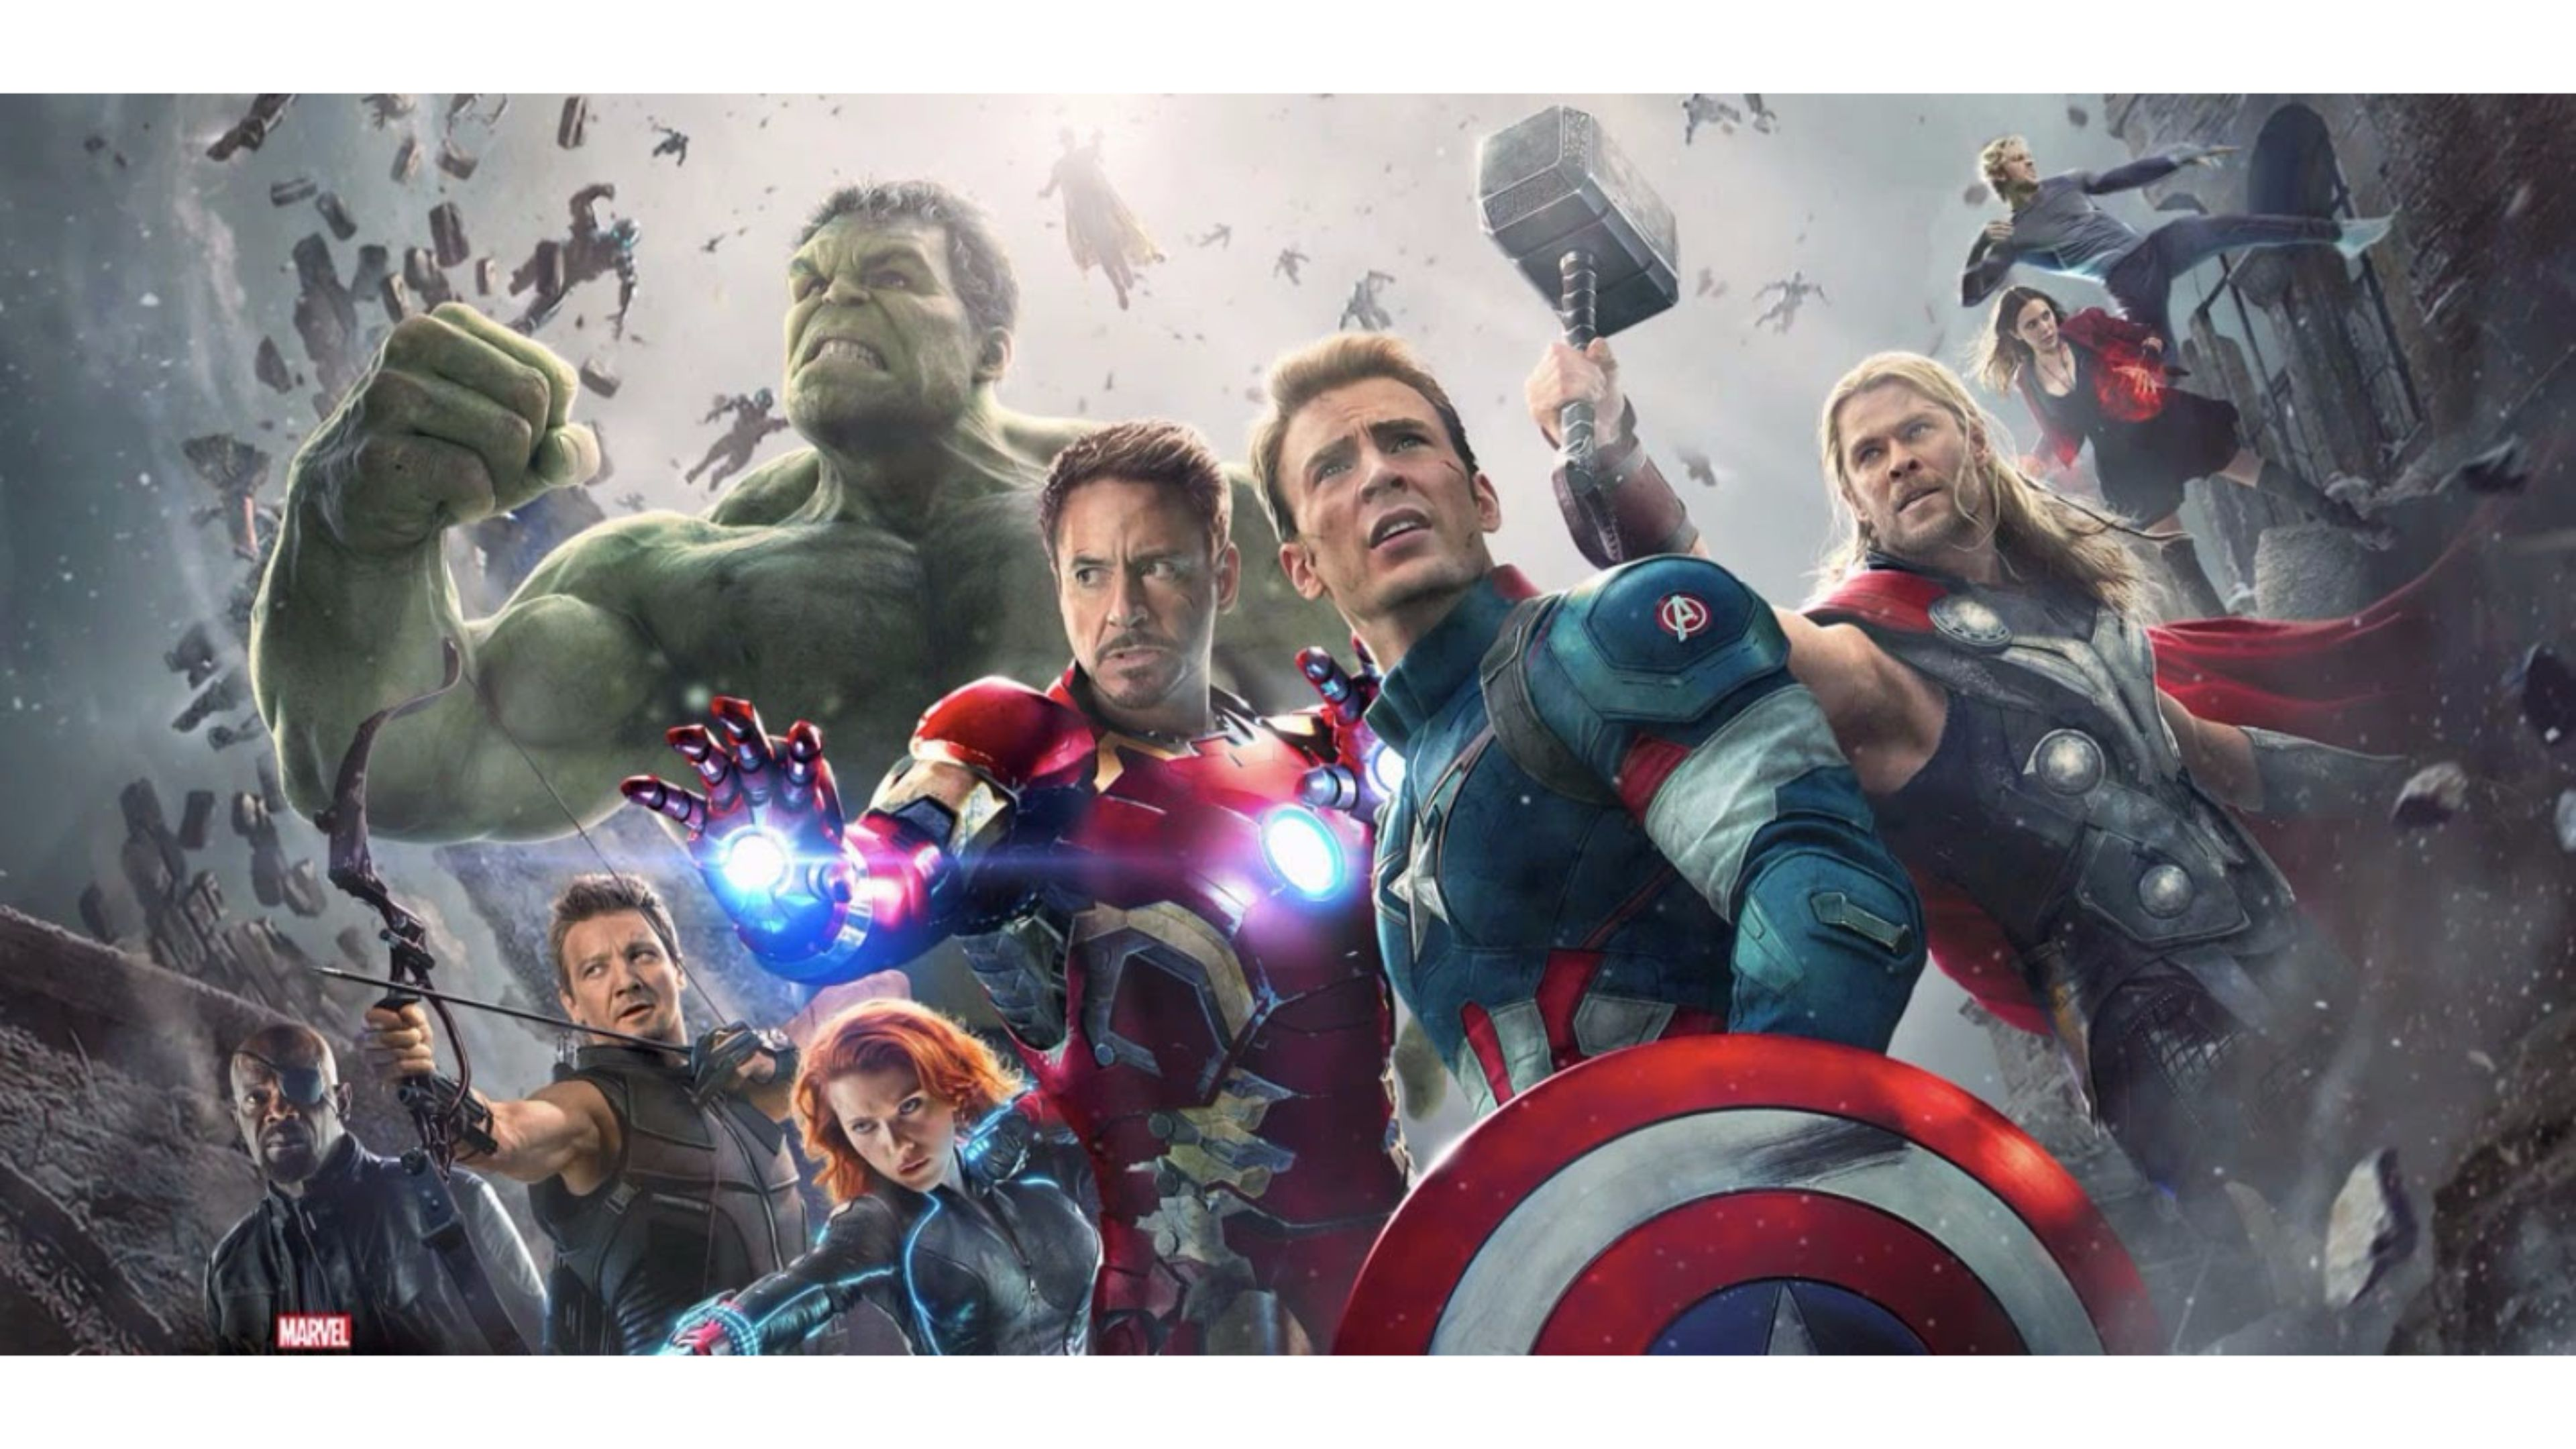 Avengers Wallpapers 4k For Your Phone And Desktop Screen